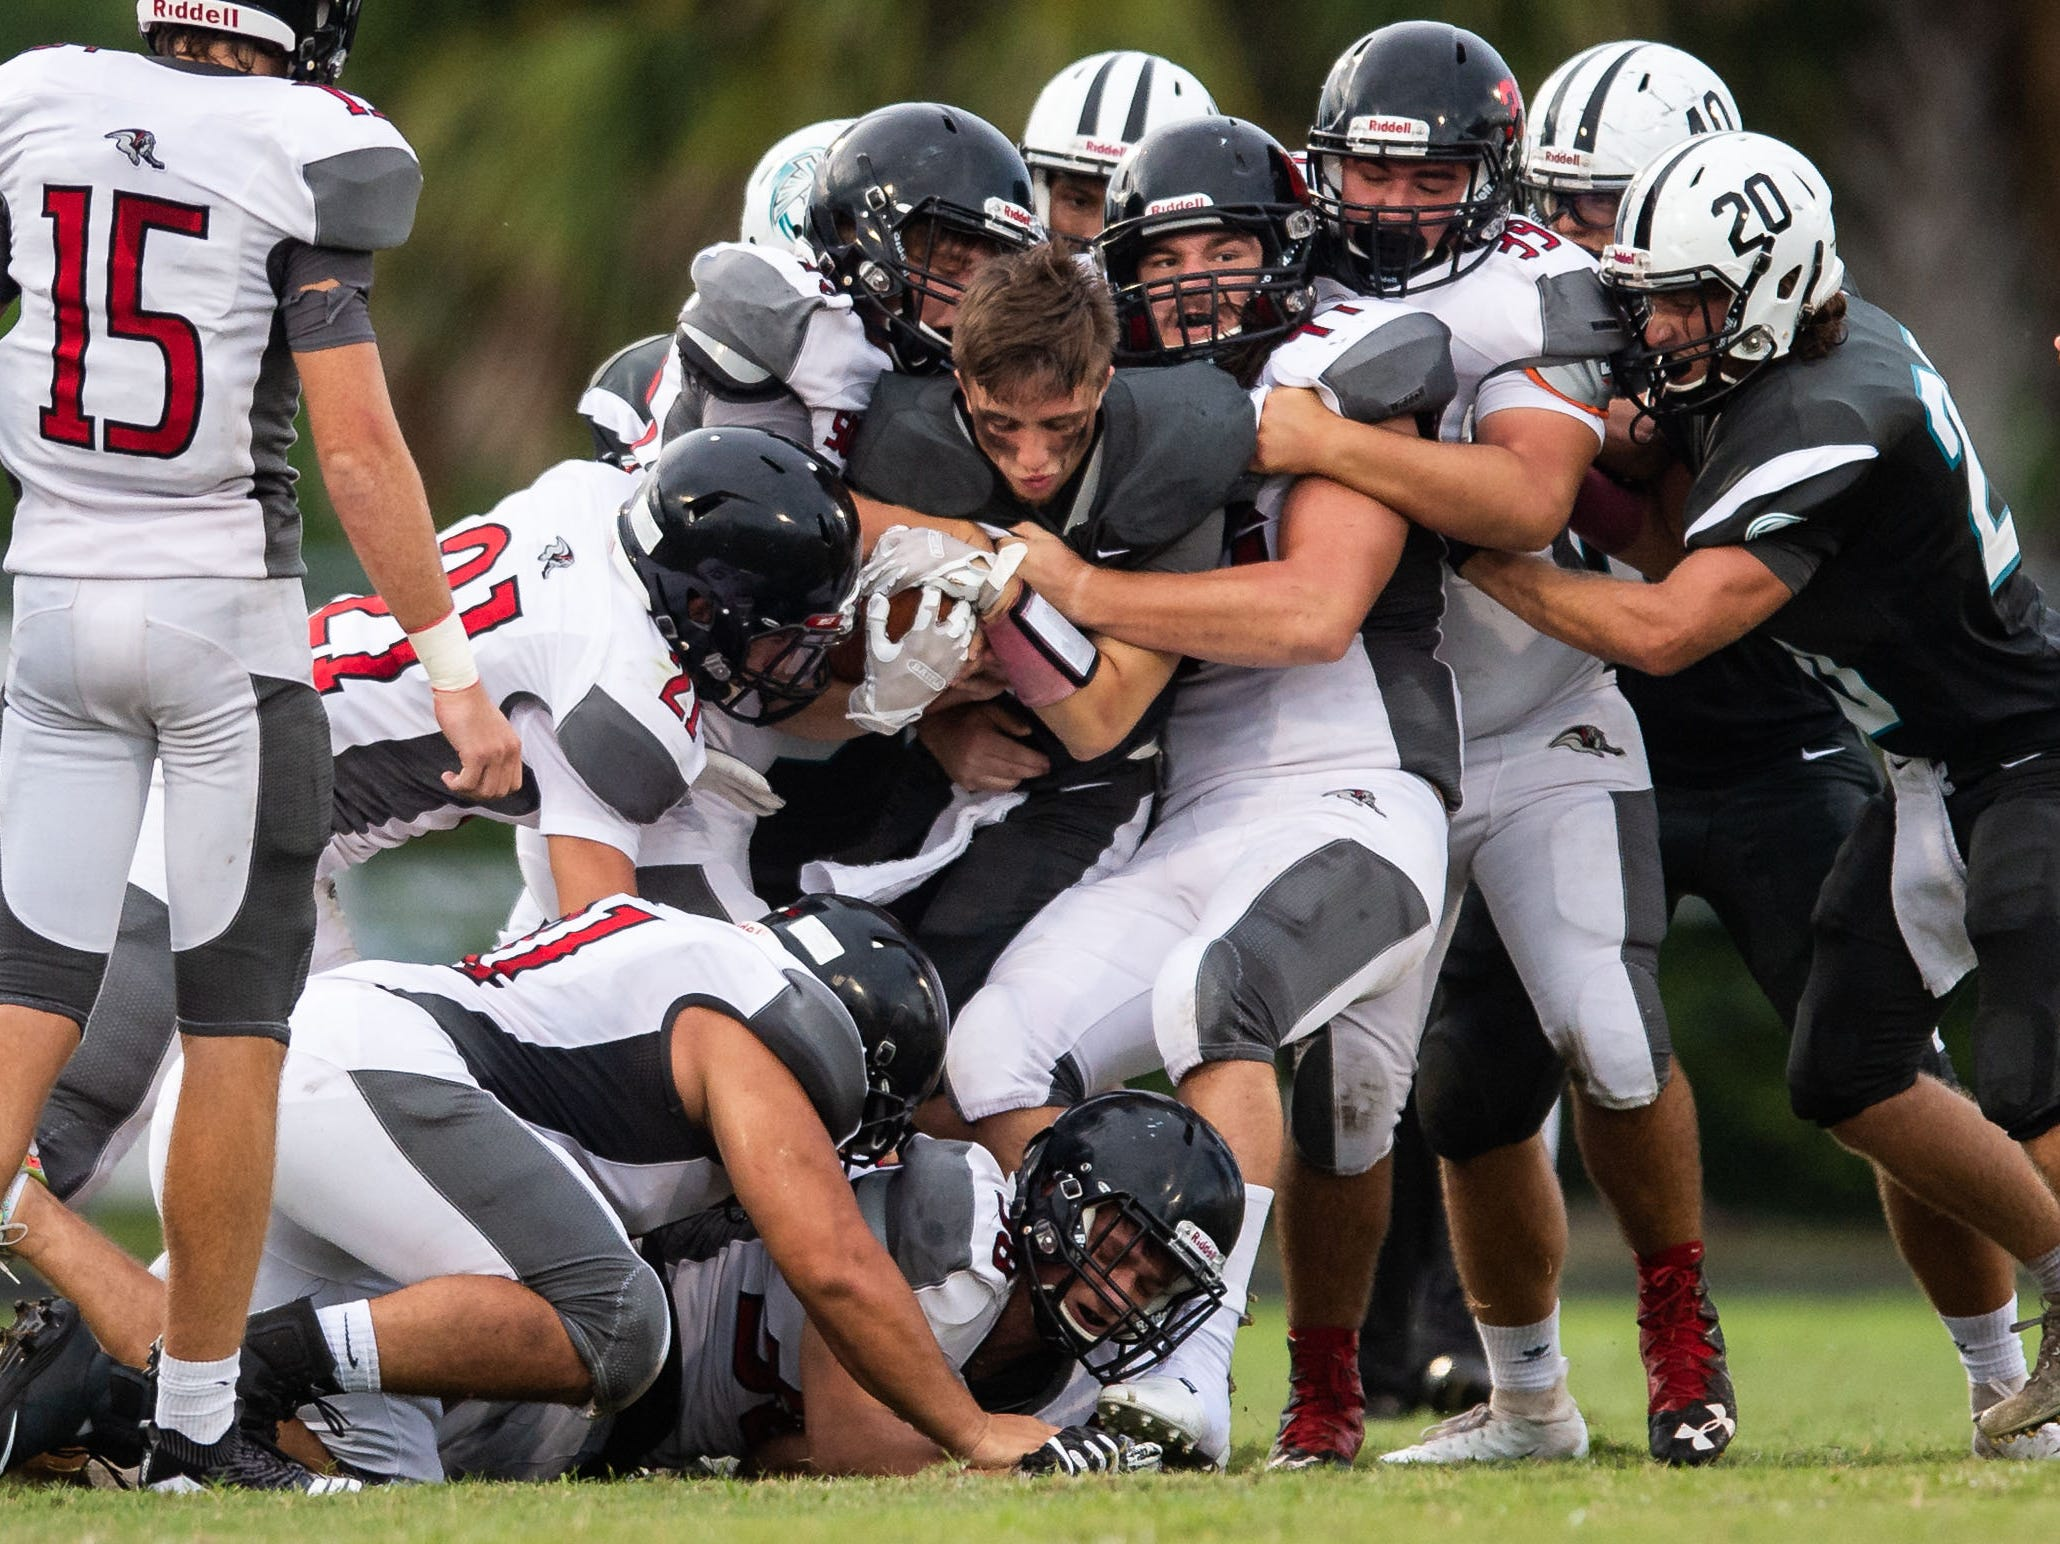 Jensen Beach's Bradyn Bytheway loses his helmet as is brought down by a gang of South Fork defenders, including Camp Gobler (center), during the first half of the high school football game Friday, Aug. 24, 2018, at Jensen Beach High School.